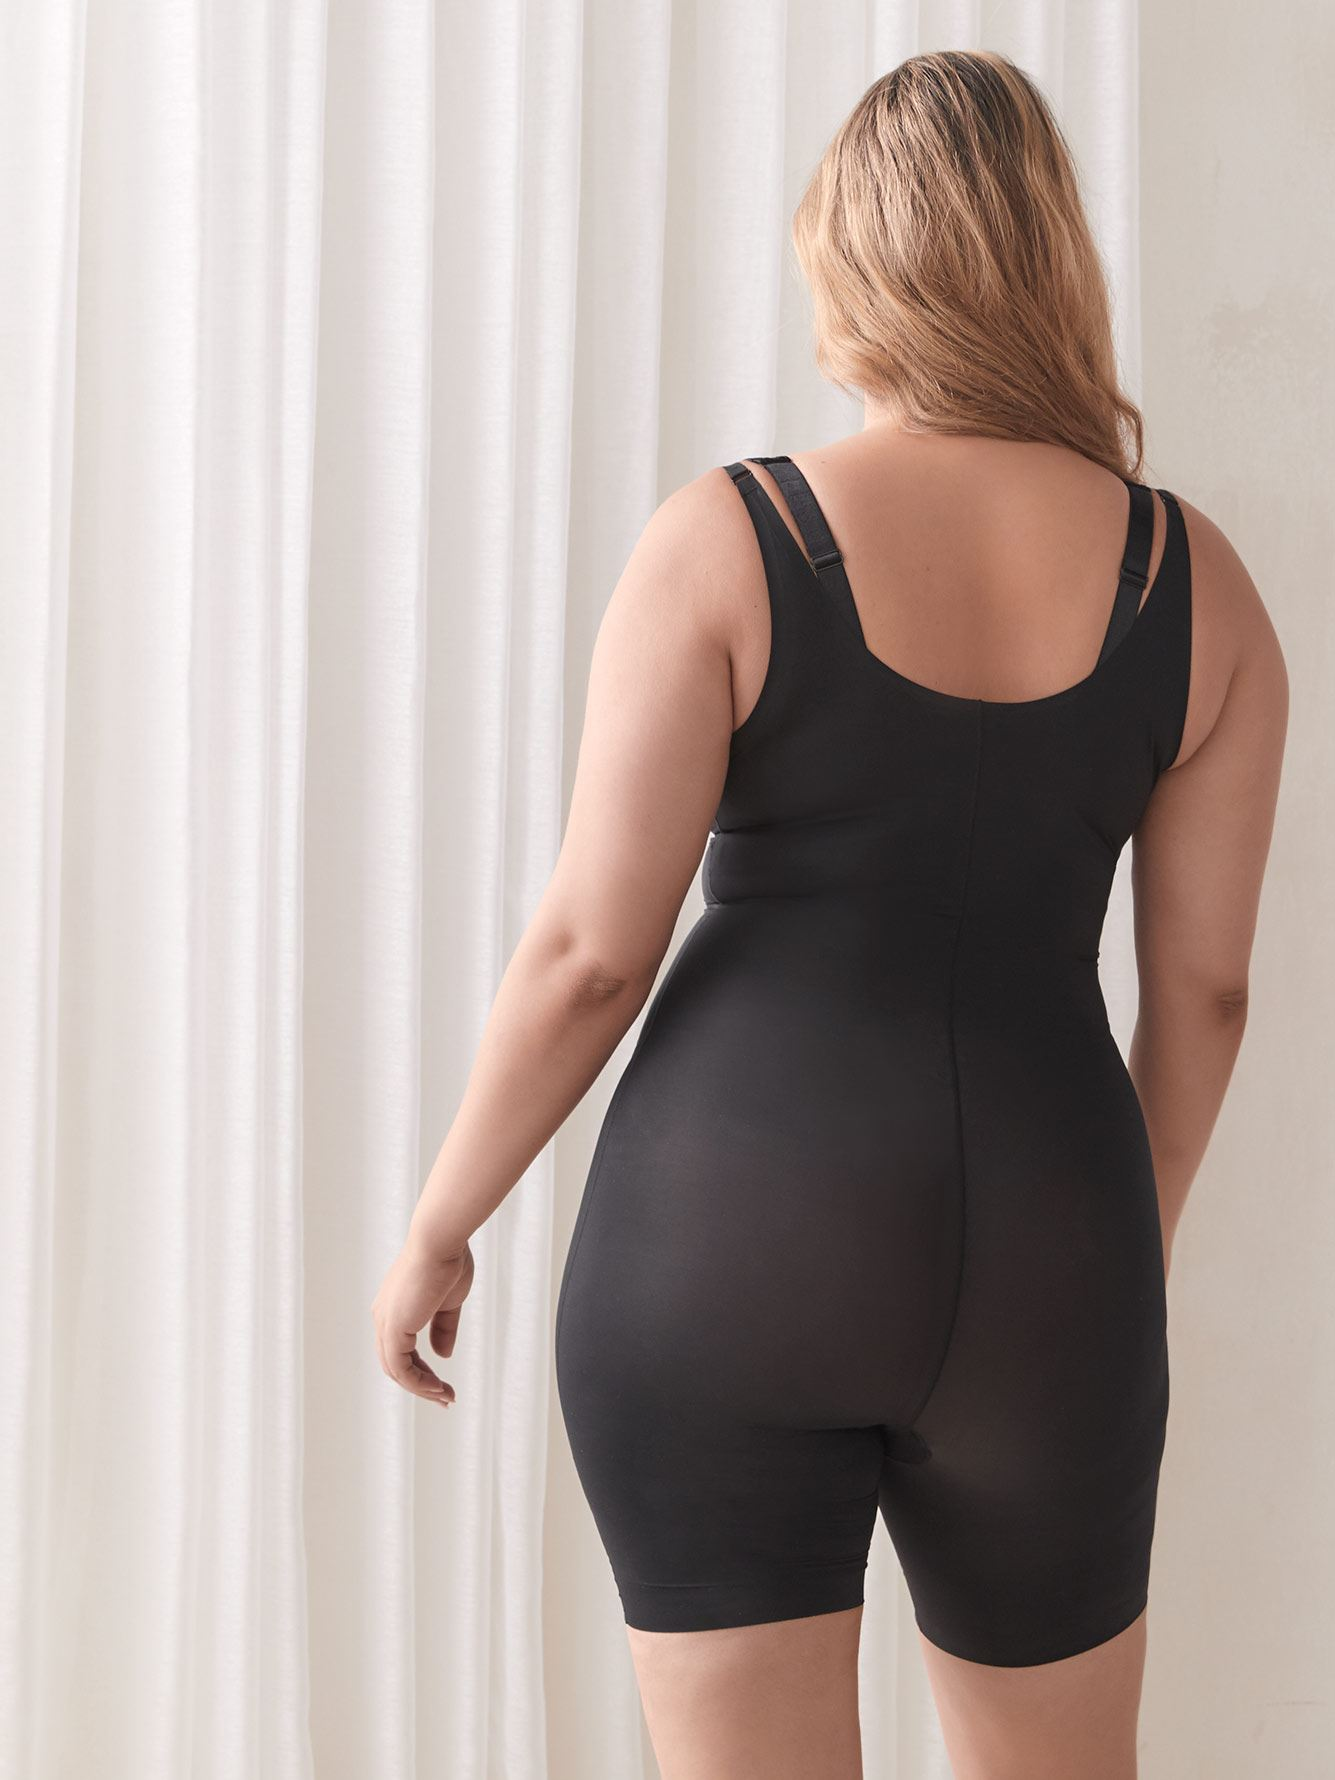 Open-Bust Thinstincts Shapewear Bodysuit - Spanx